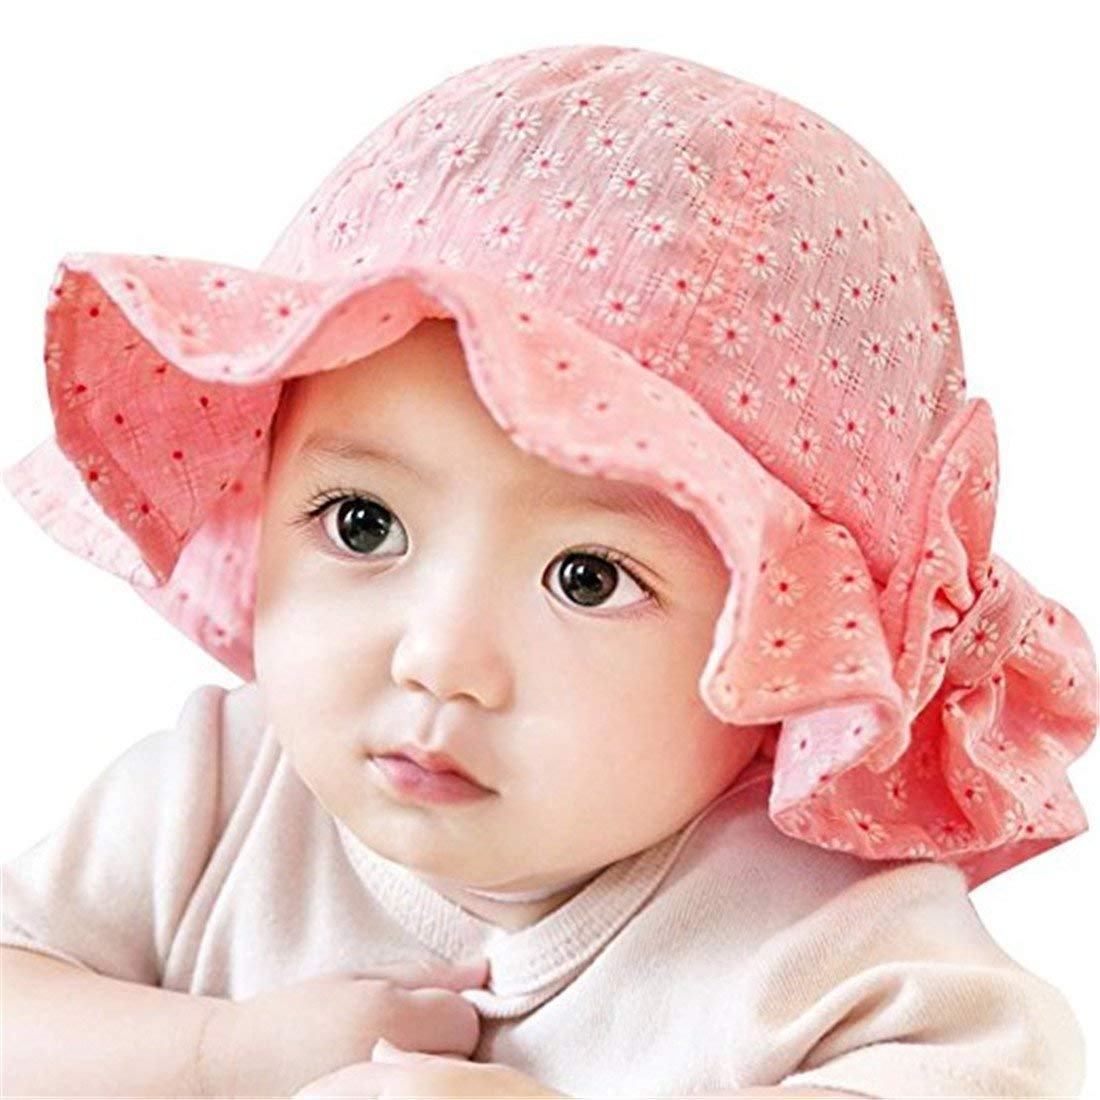 a23411c547d92 Get Quotations · Baby Girl Bucket Hat Pink Floral Ruffle Bowknot UPF 50+  Outdoor Kids Sun Hat Cap